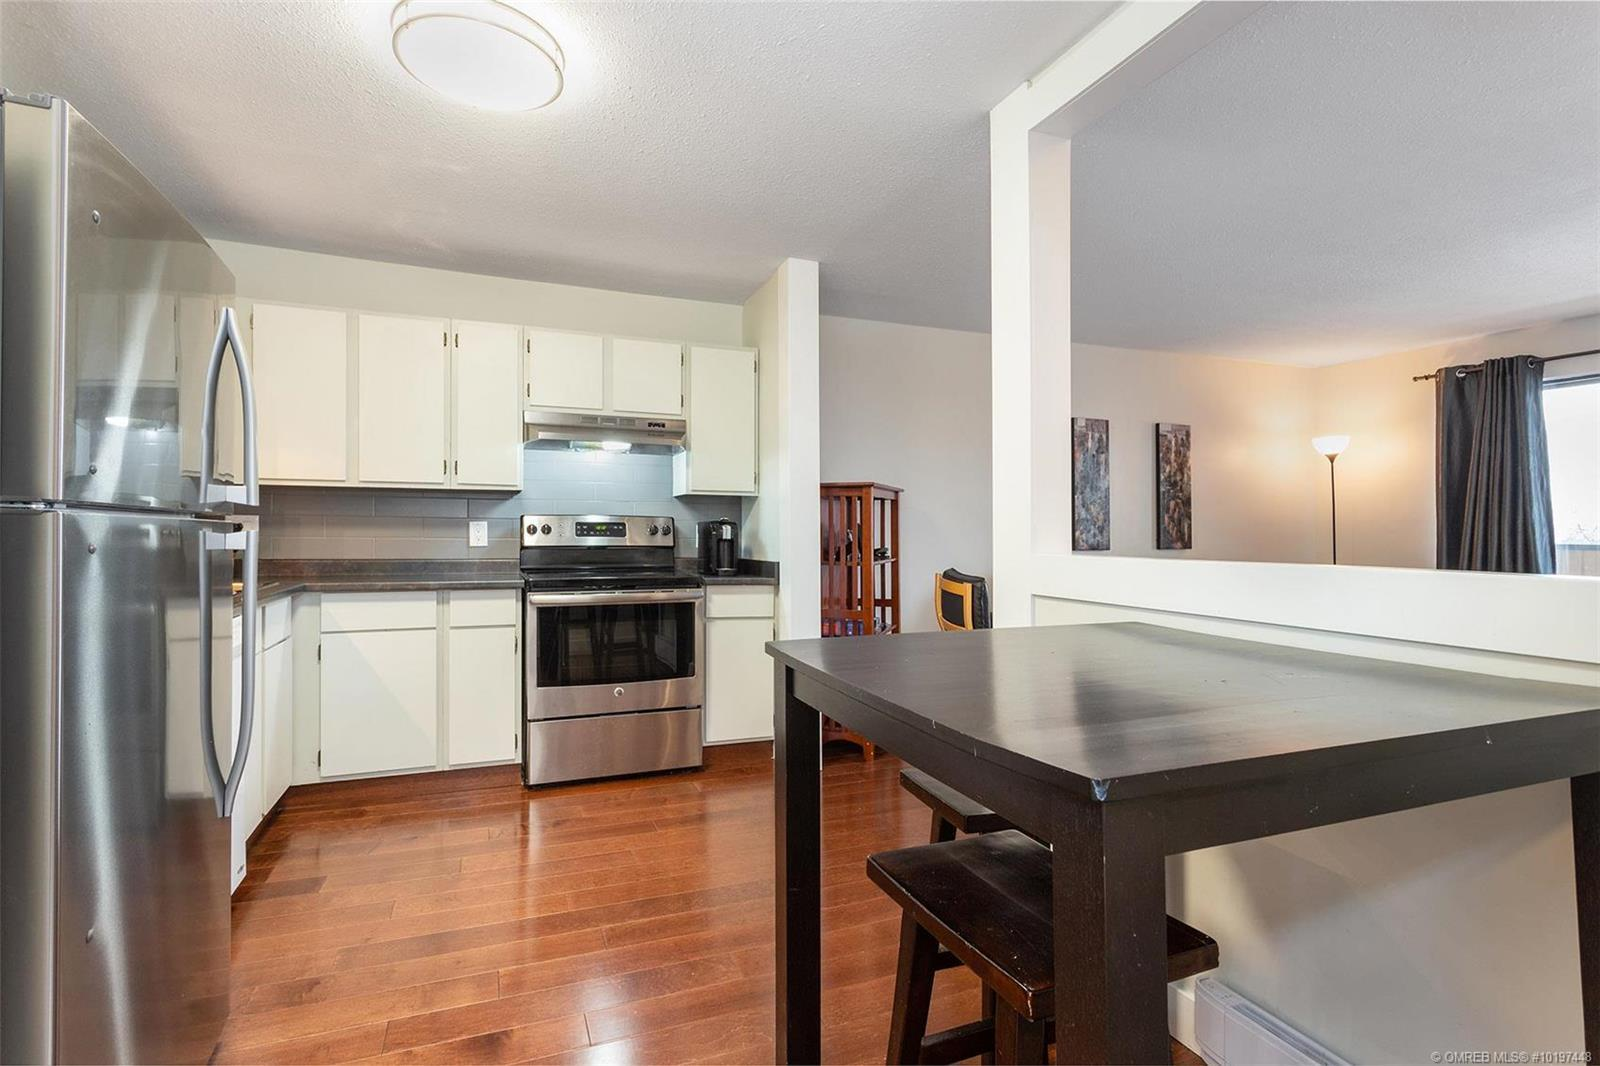 Removed: 213 - 1640 Ufton Court, Kelowna, BC - Removed on 2020-03-10 05:36:04